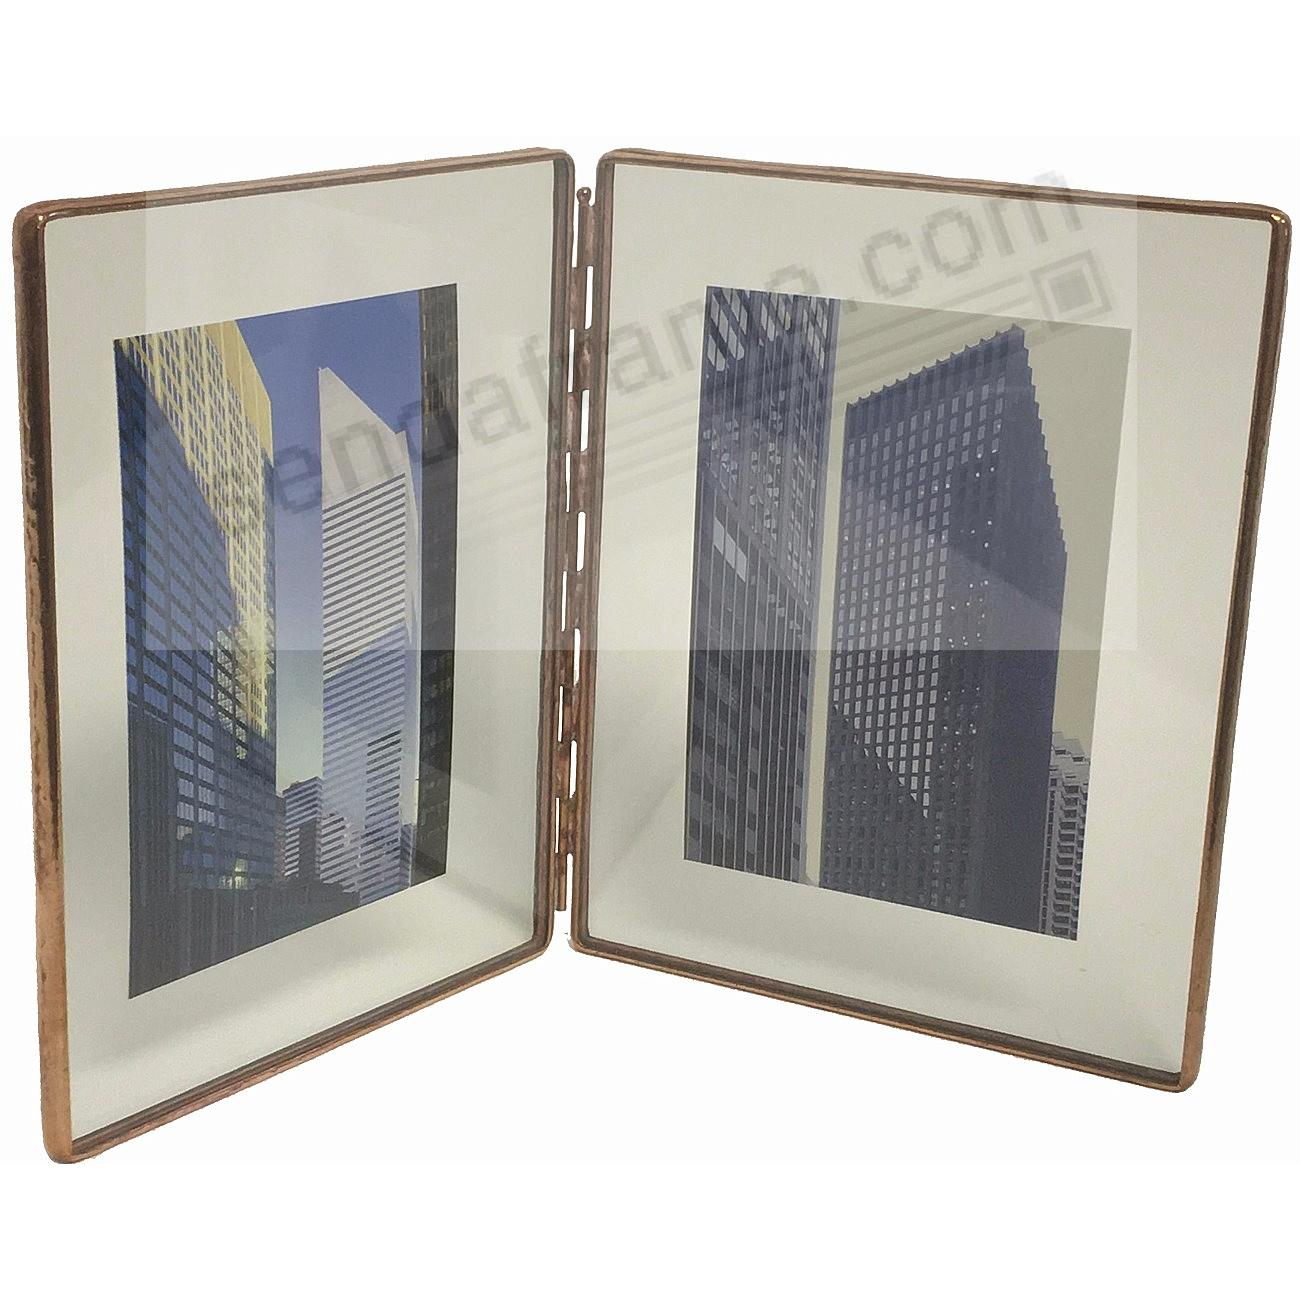 Copper clear glass float frame 5x74x6 hinged double by bedford copper clear glass float frame 5x74x6 hinged double by bedford downing jeuxipadfo Image collections